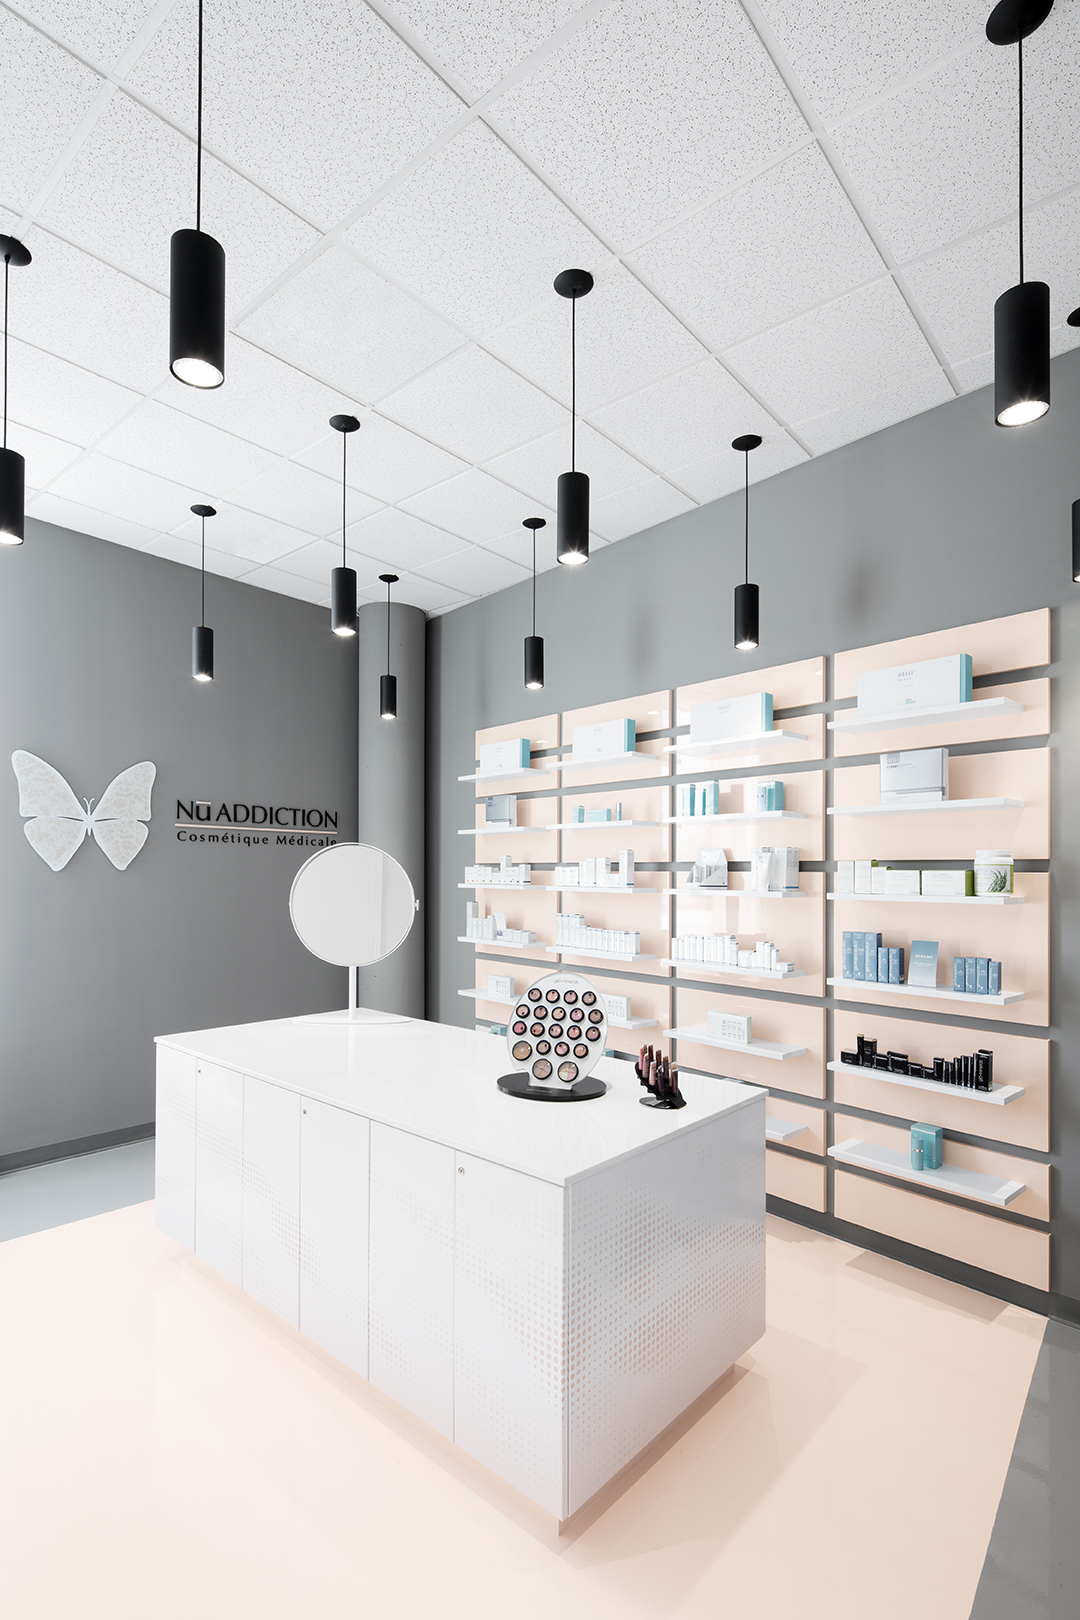 Univers_NuFace_2.3_ADHOC_architectes_©Adrien_Williams_06